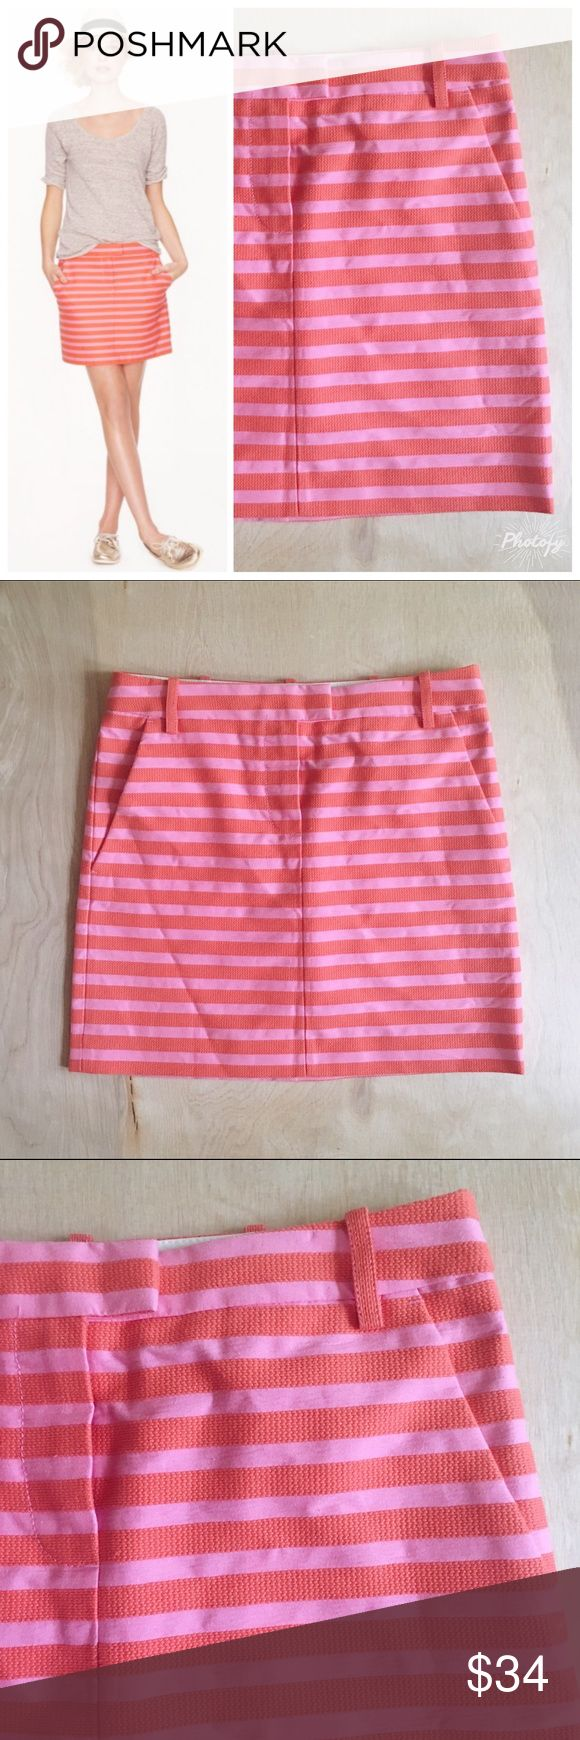 """J Crew Postcard Mini Skirt in Textured Stripe J. Crew (retail, not outlet) Postcard Mini Skirt in coral and pink textured stripe colorway. The coral stripes are actually embroidered onto the skirt. Trouser details such as belt loops and zip fly with tab closure. In excellent preowned condition. No stains, holes, or significant wear. Size 00. Sits at hip. Approximate measurements when laid flat: waist 14"""", hips 17.75"""", length 15.75"""". J. Crew Skirts Mini"""